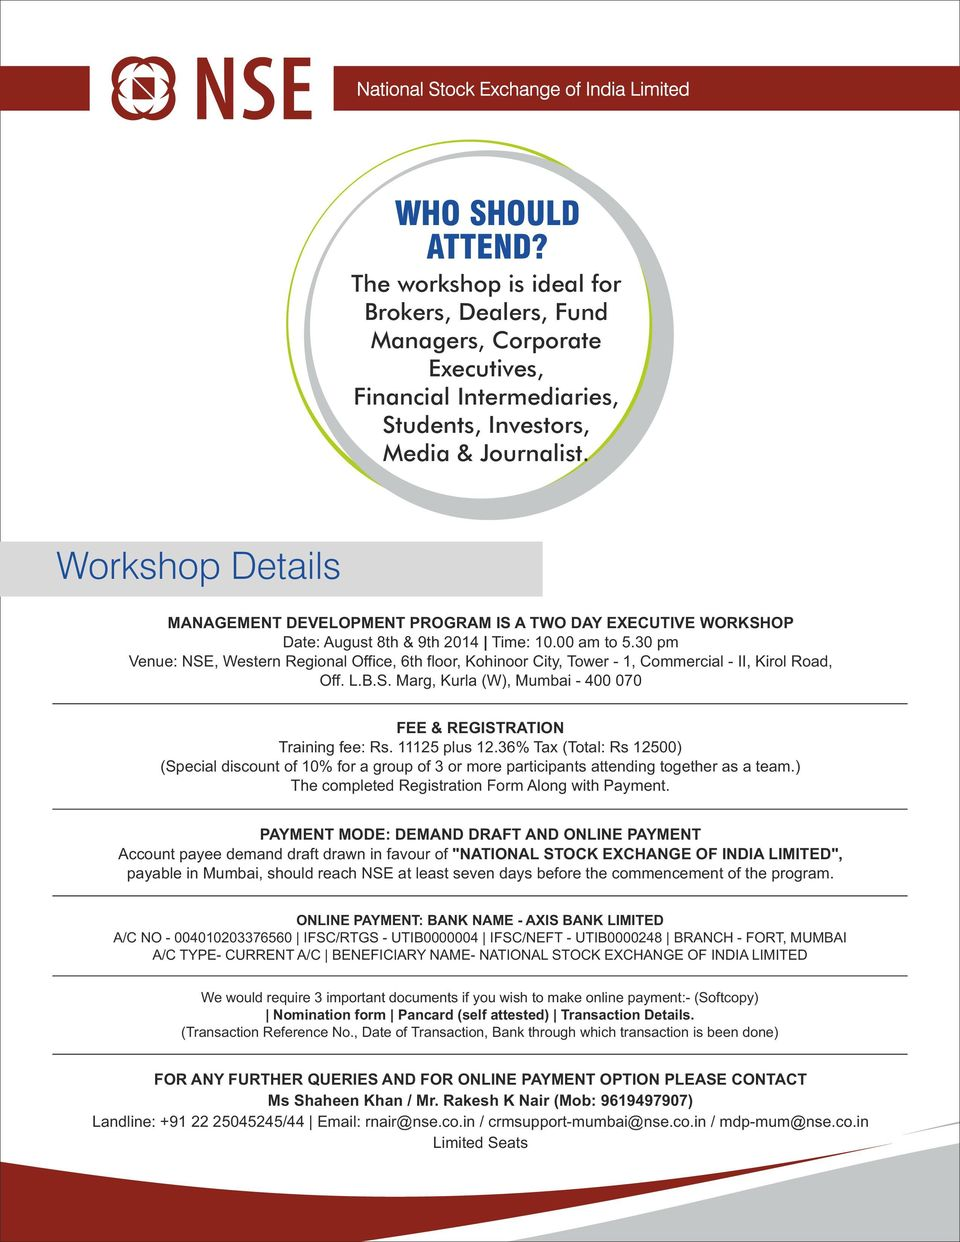 Workshop Details MANAGEMENT DEVELOPMENT PROGRAM IS A TWO DAY EXECUTIVE WORKSHOP Date: August 8th & 9th 2014 Time: 10.00 am to 5.